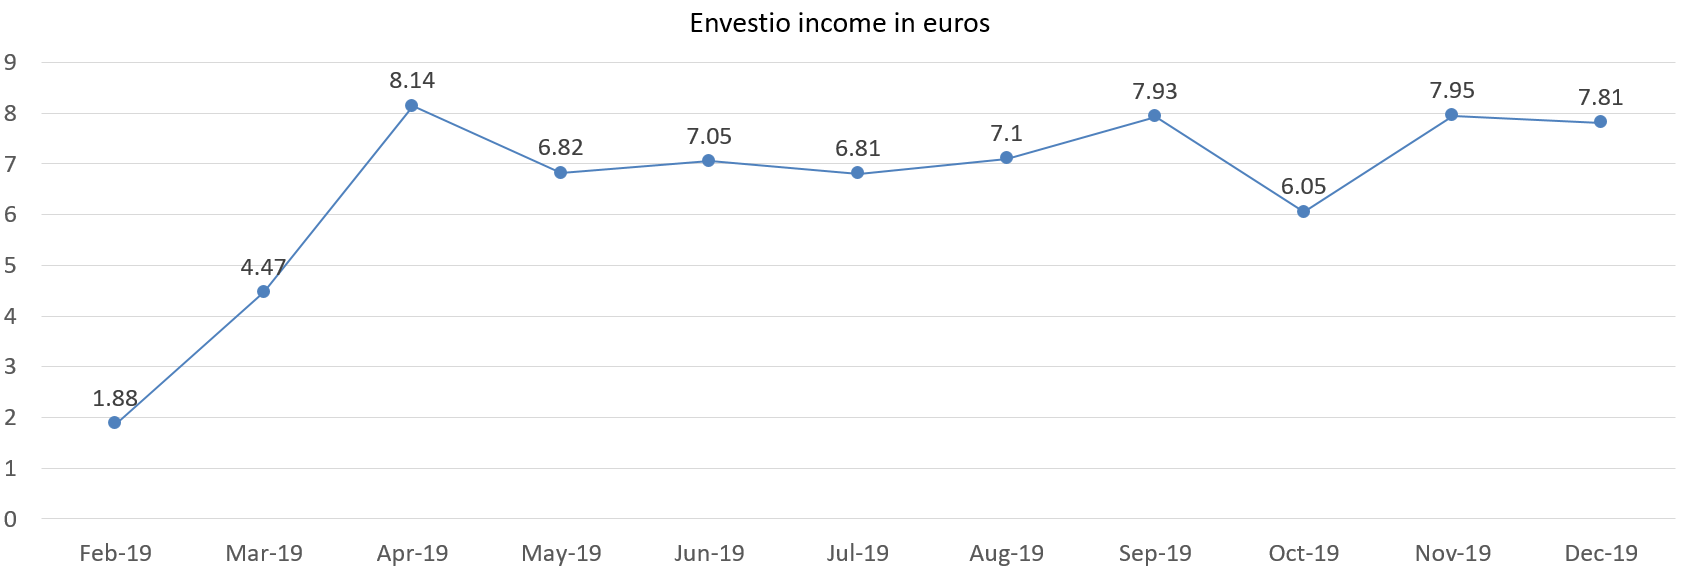 Envestio interest income in euros december 2019